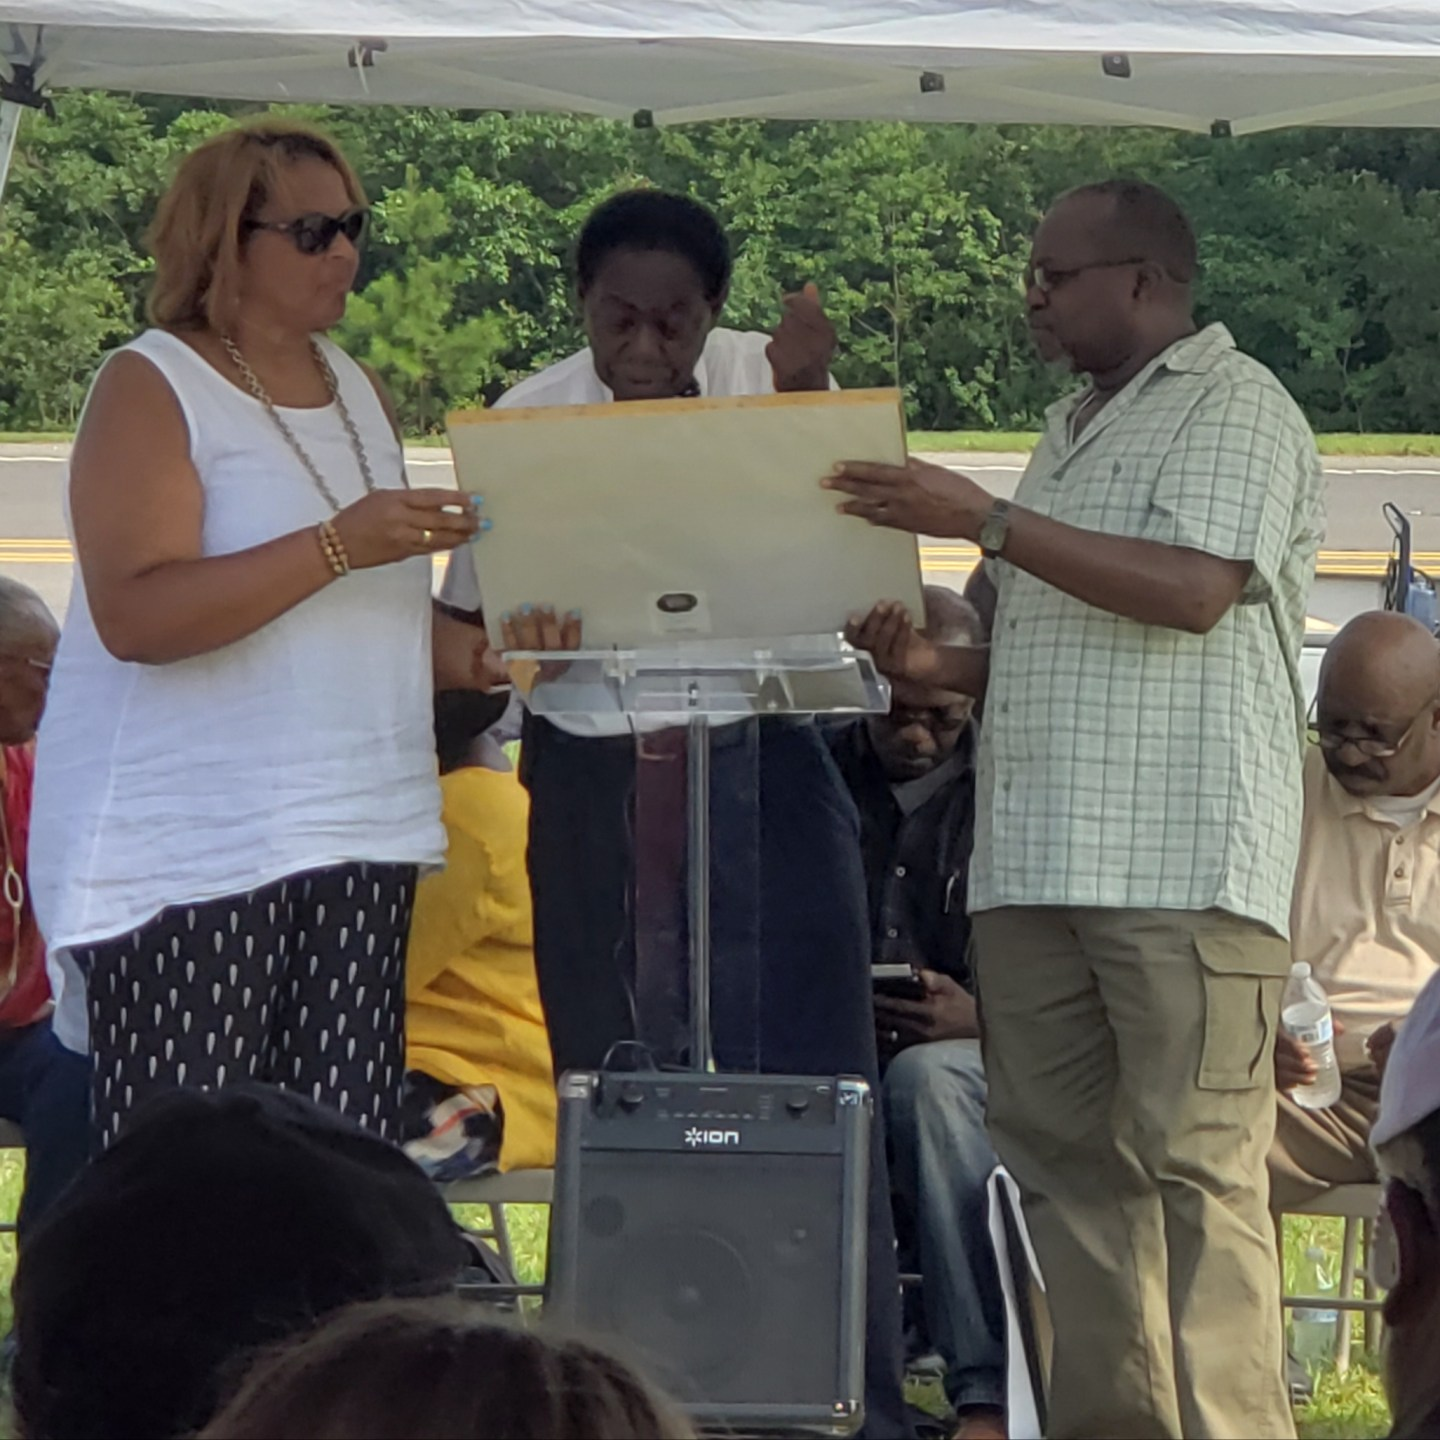 20190704_144845-1440x1440 South Carolina Bridge Dedicated to Molly Graham, African American Naturopathic Herb Doctor